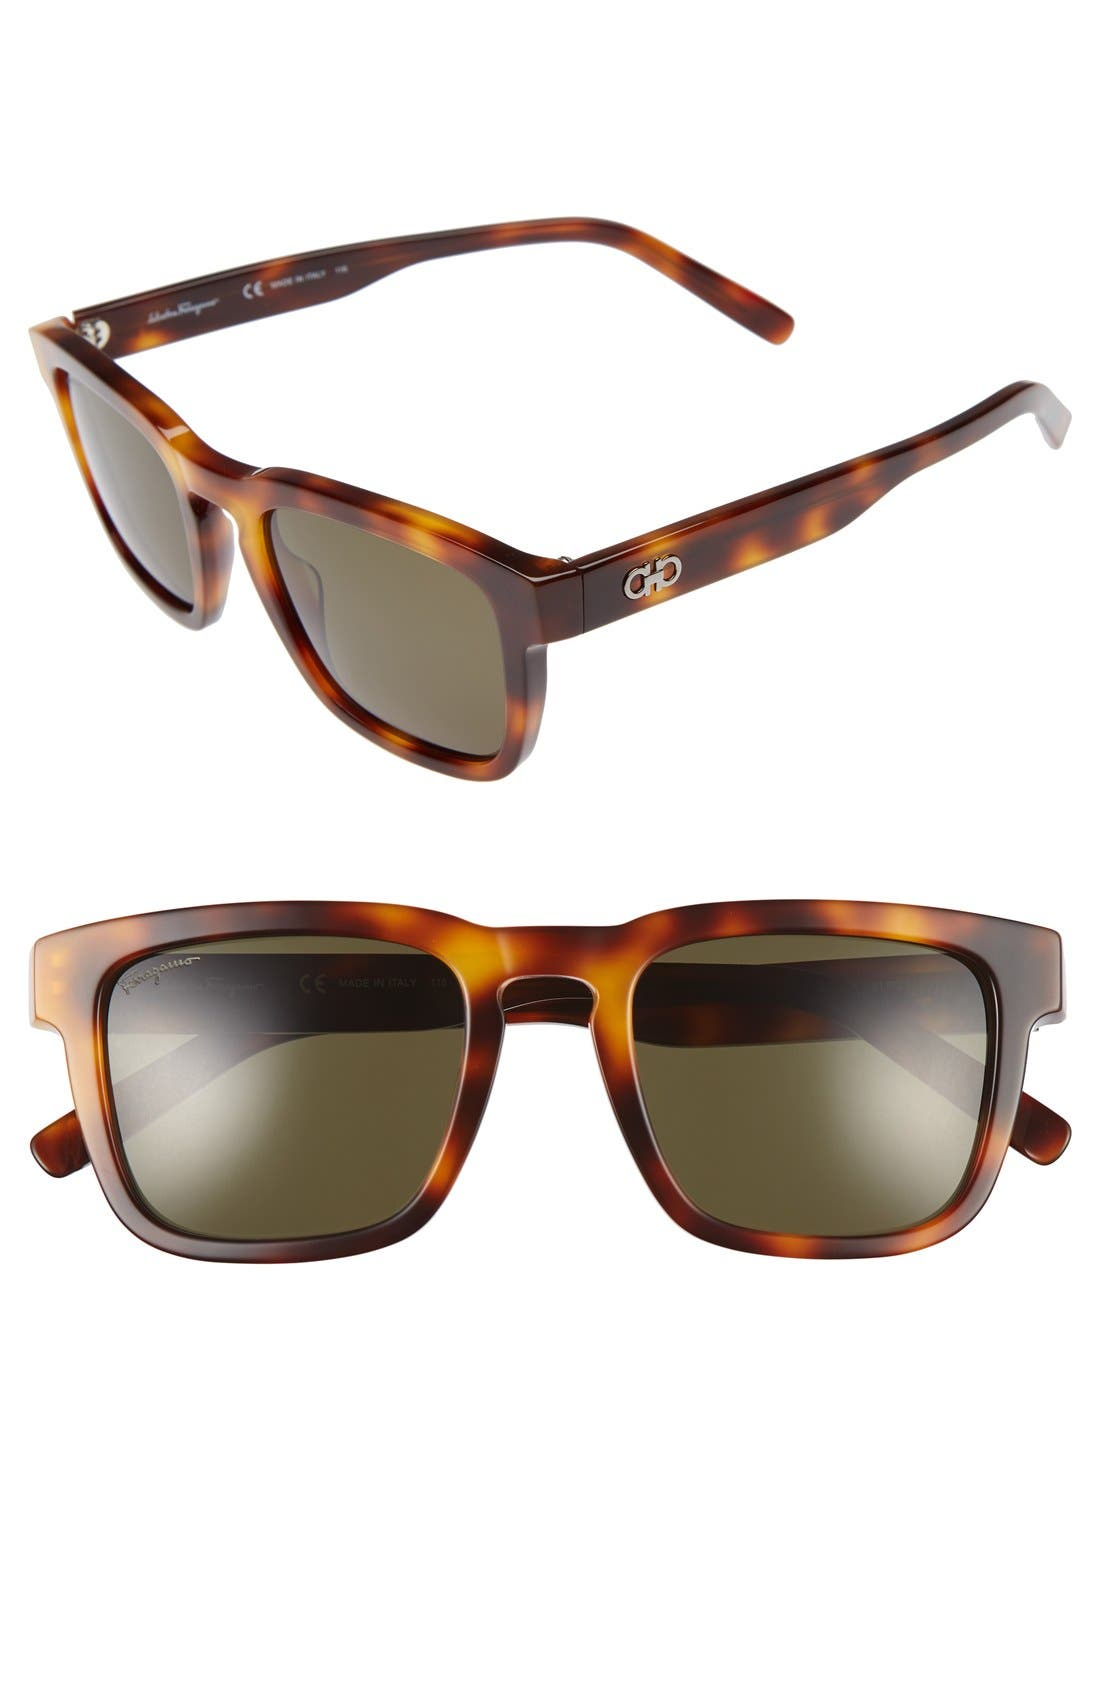 Alternate Image 1 Selected - Salvatore Ferragamo 51mm Square Sunglasses